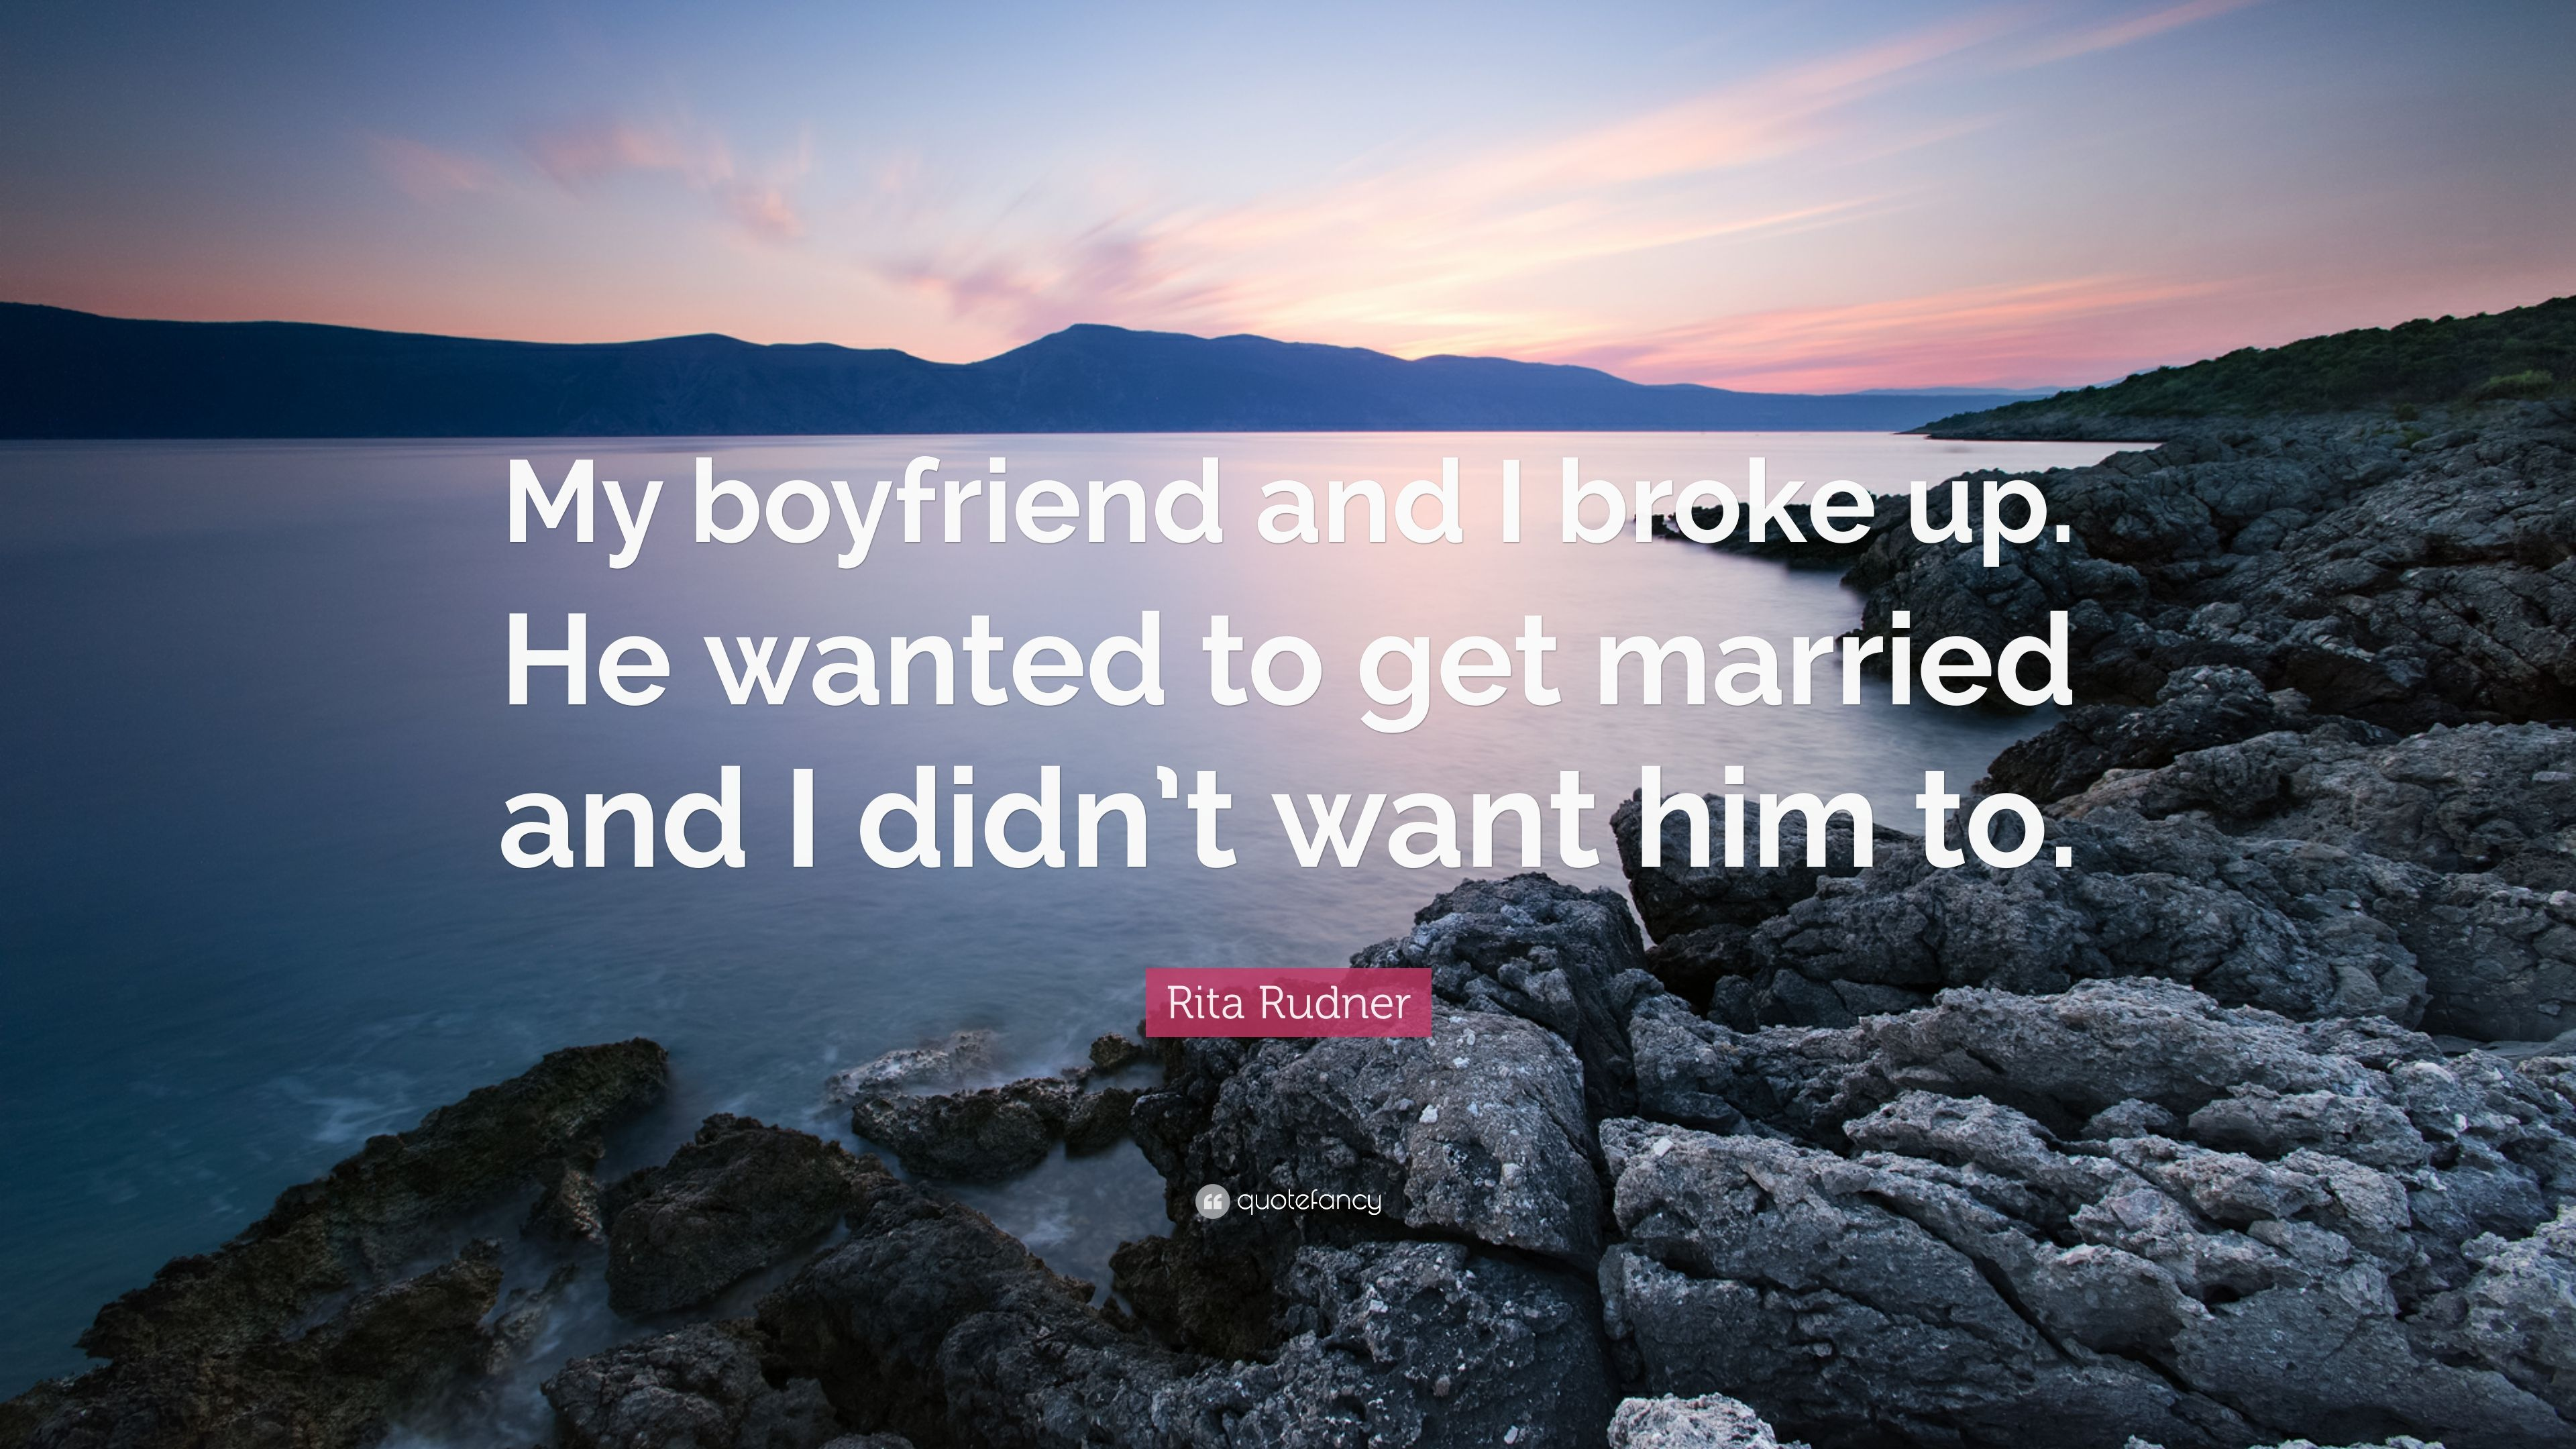 How can find a boyfriend